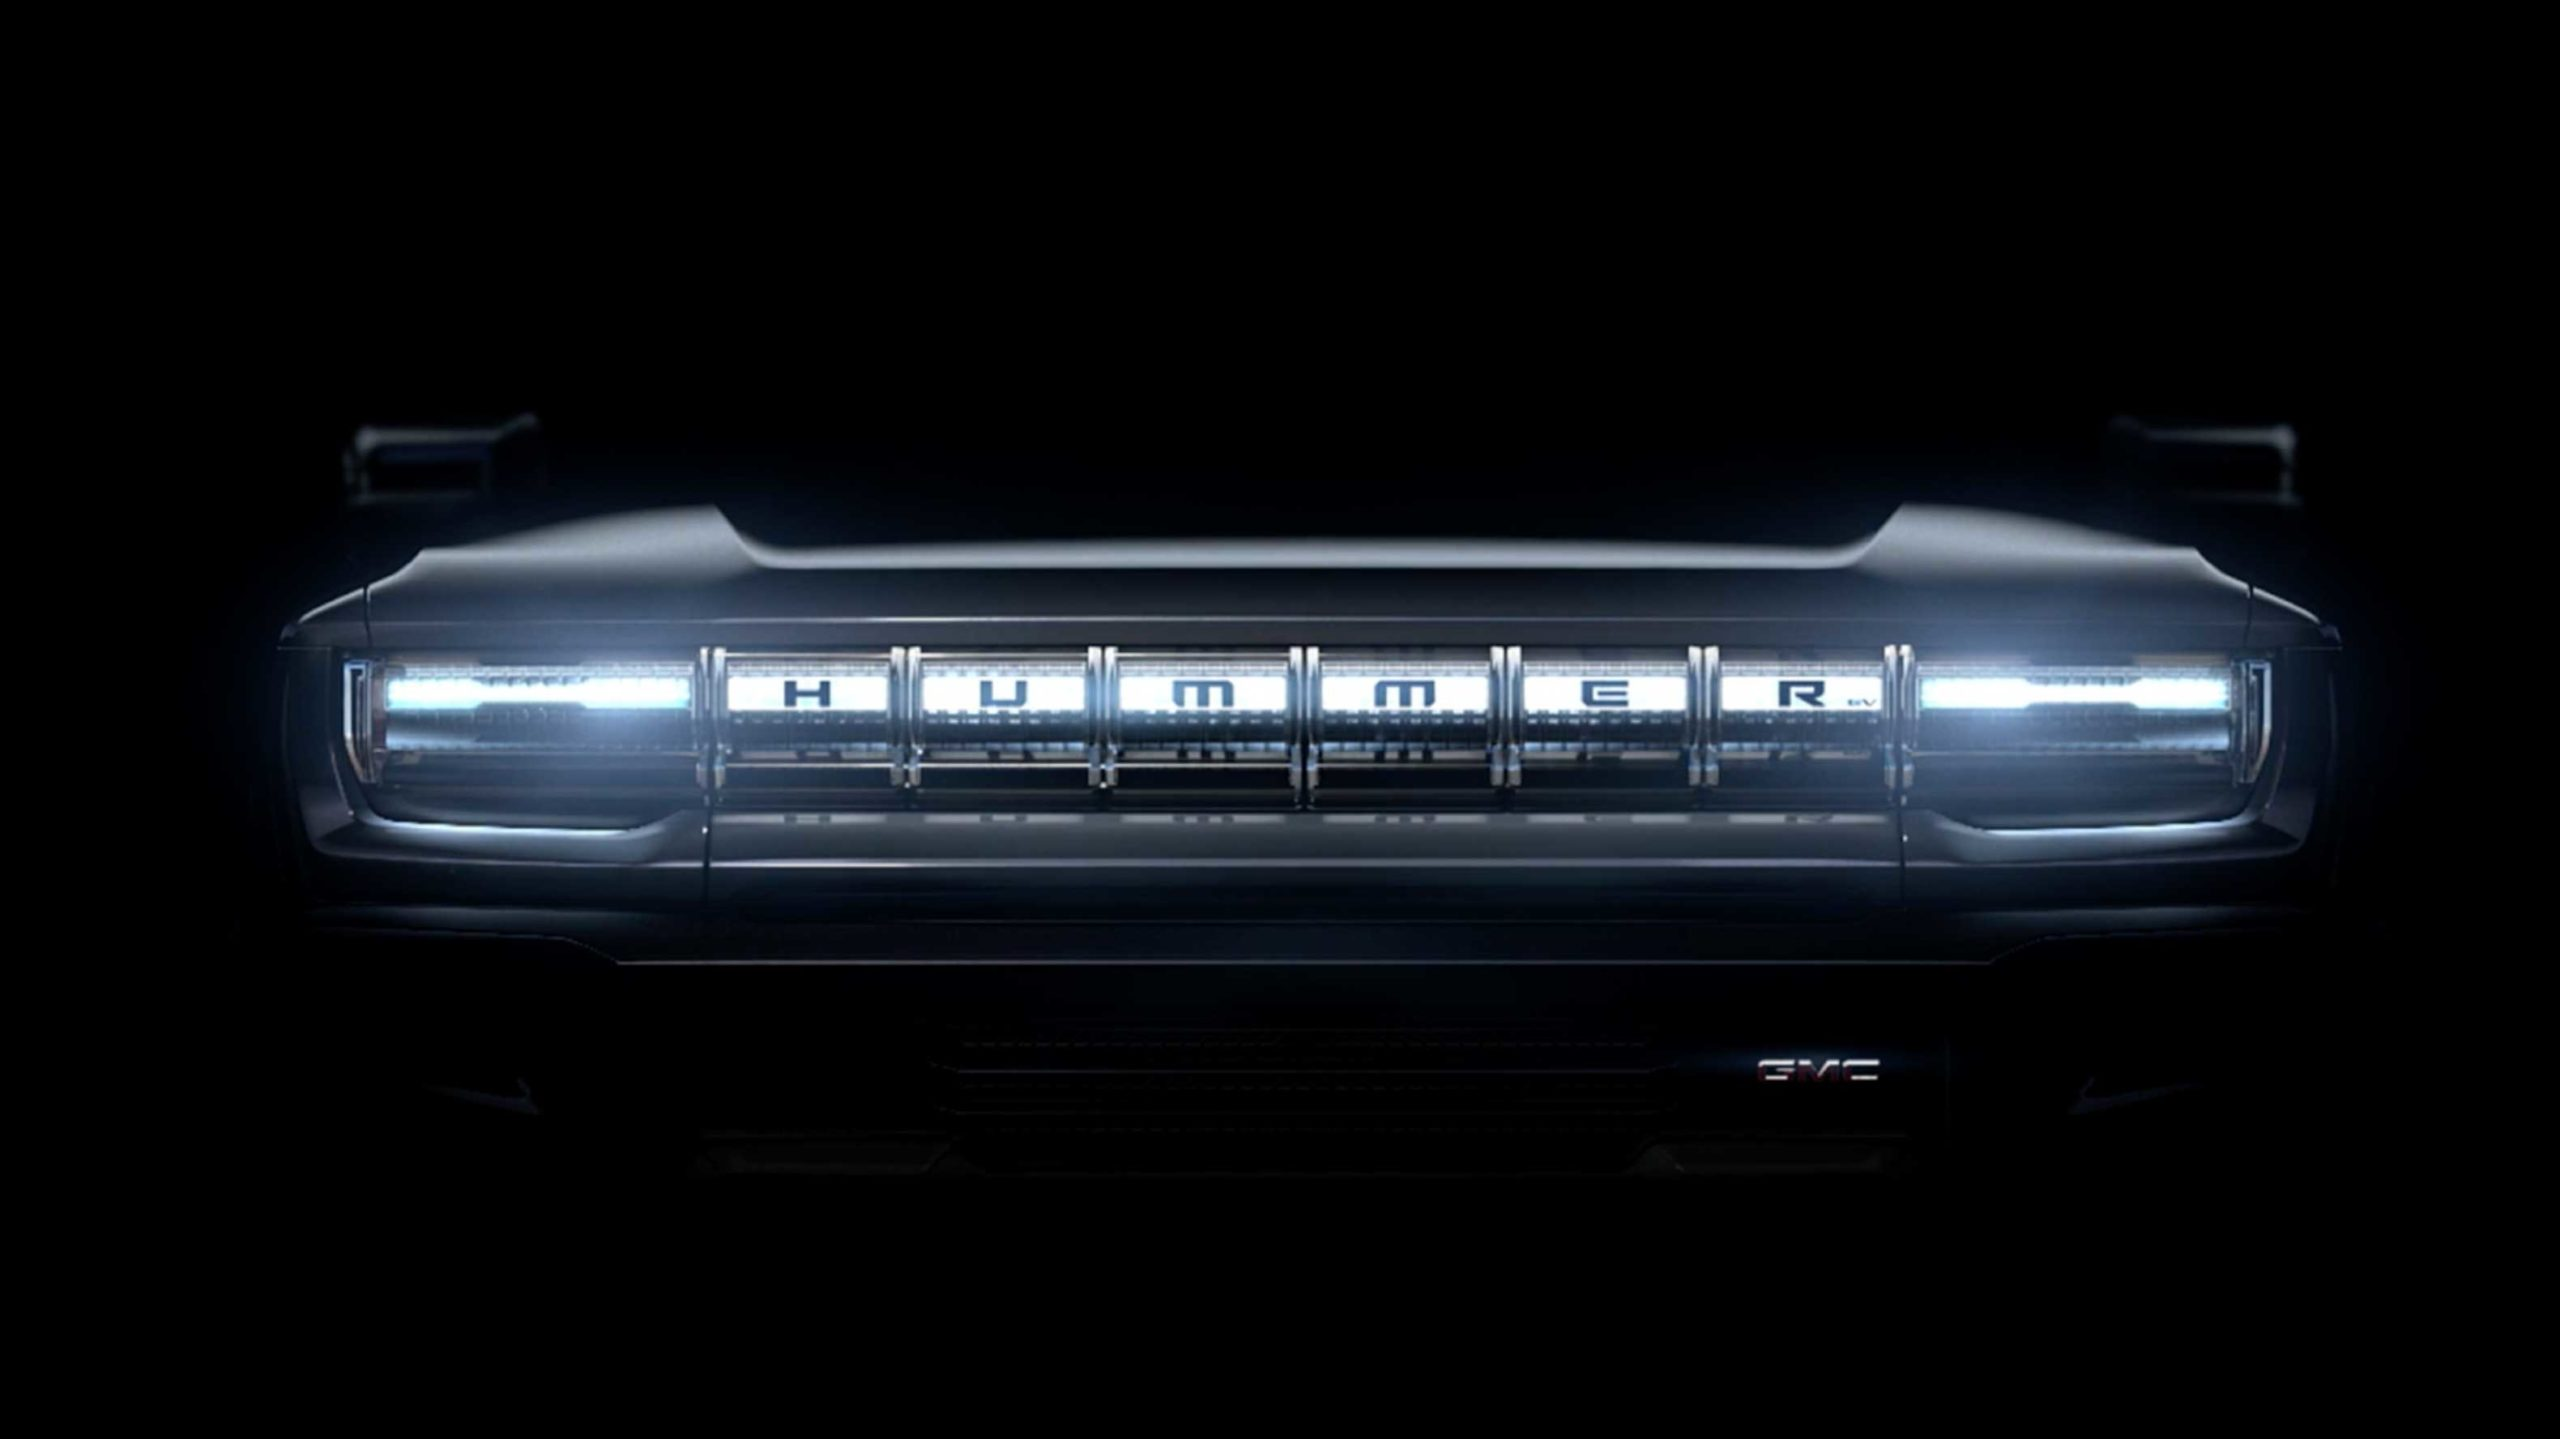 GM has started teasing its all-electric Hummer branded truck